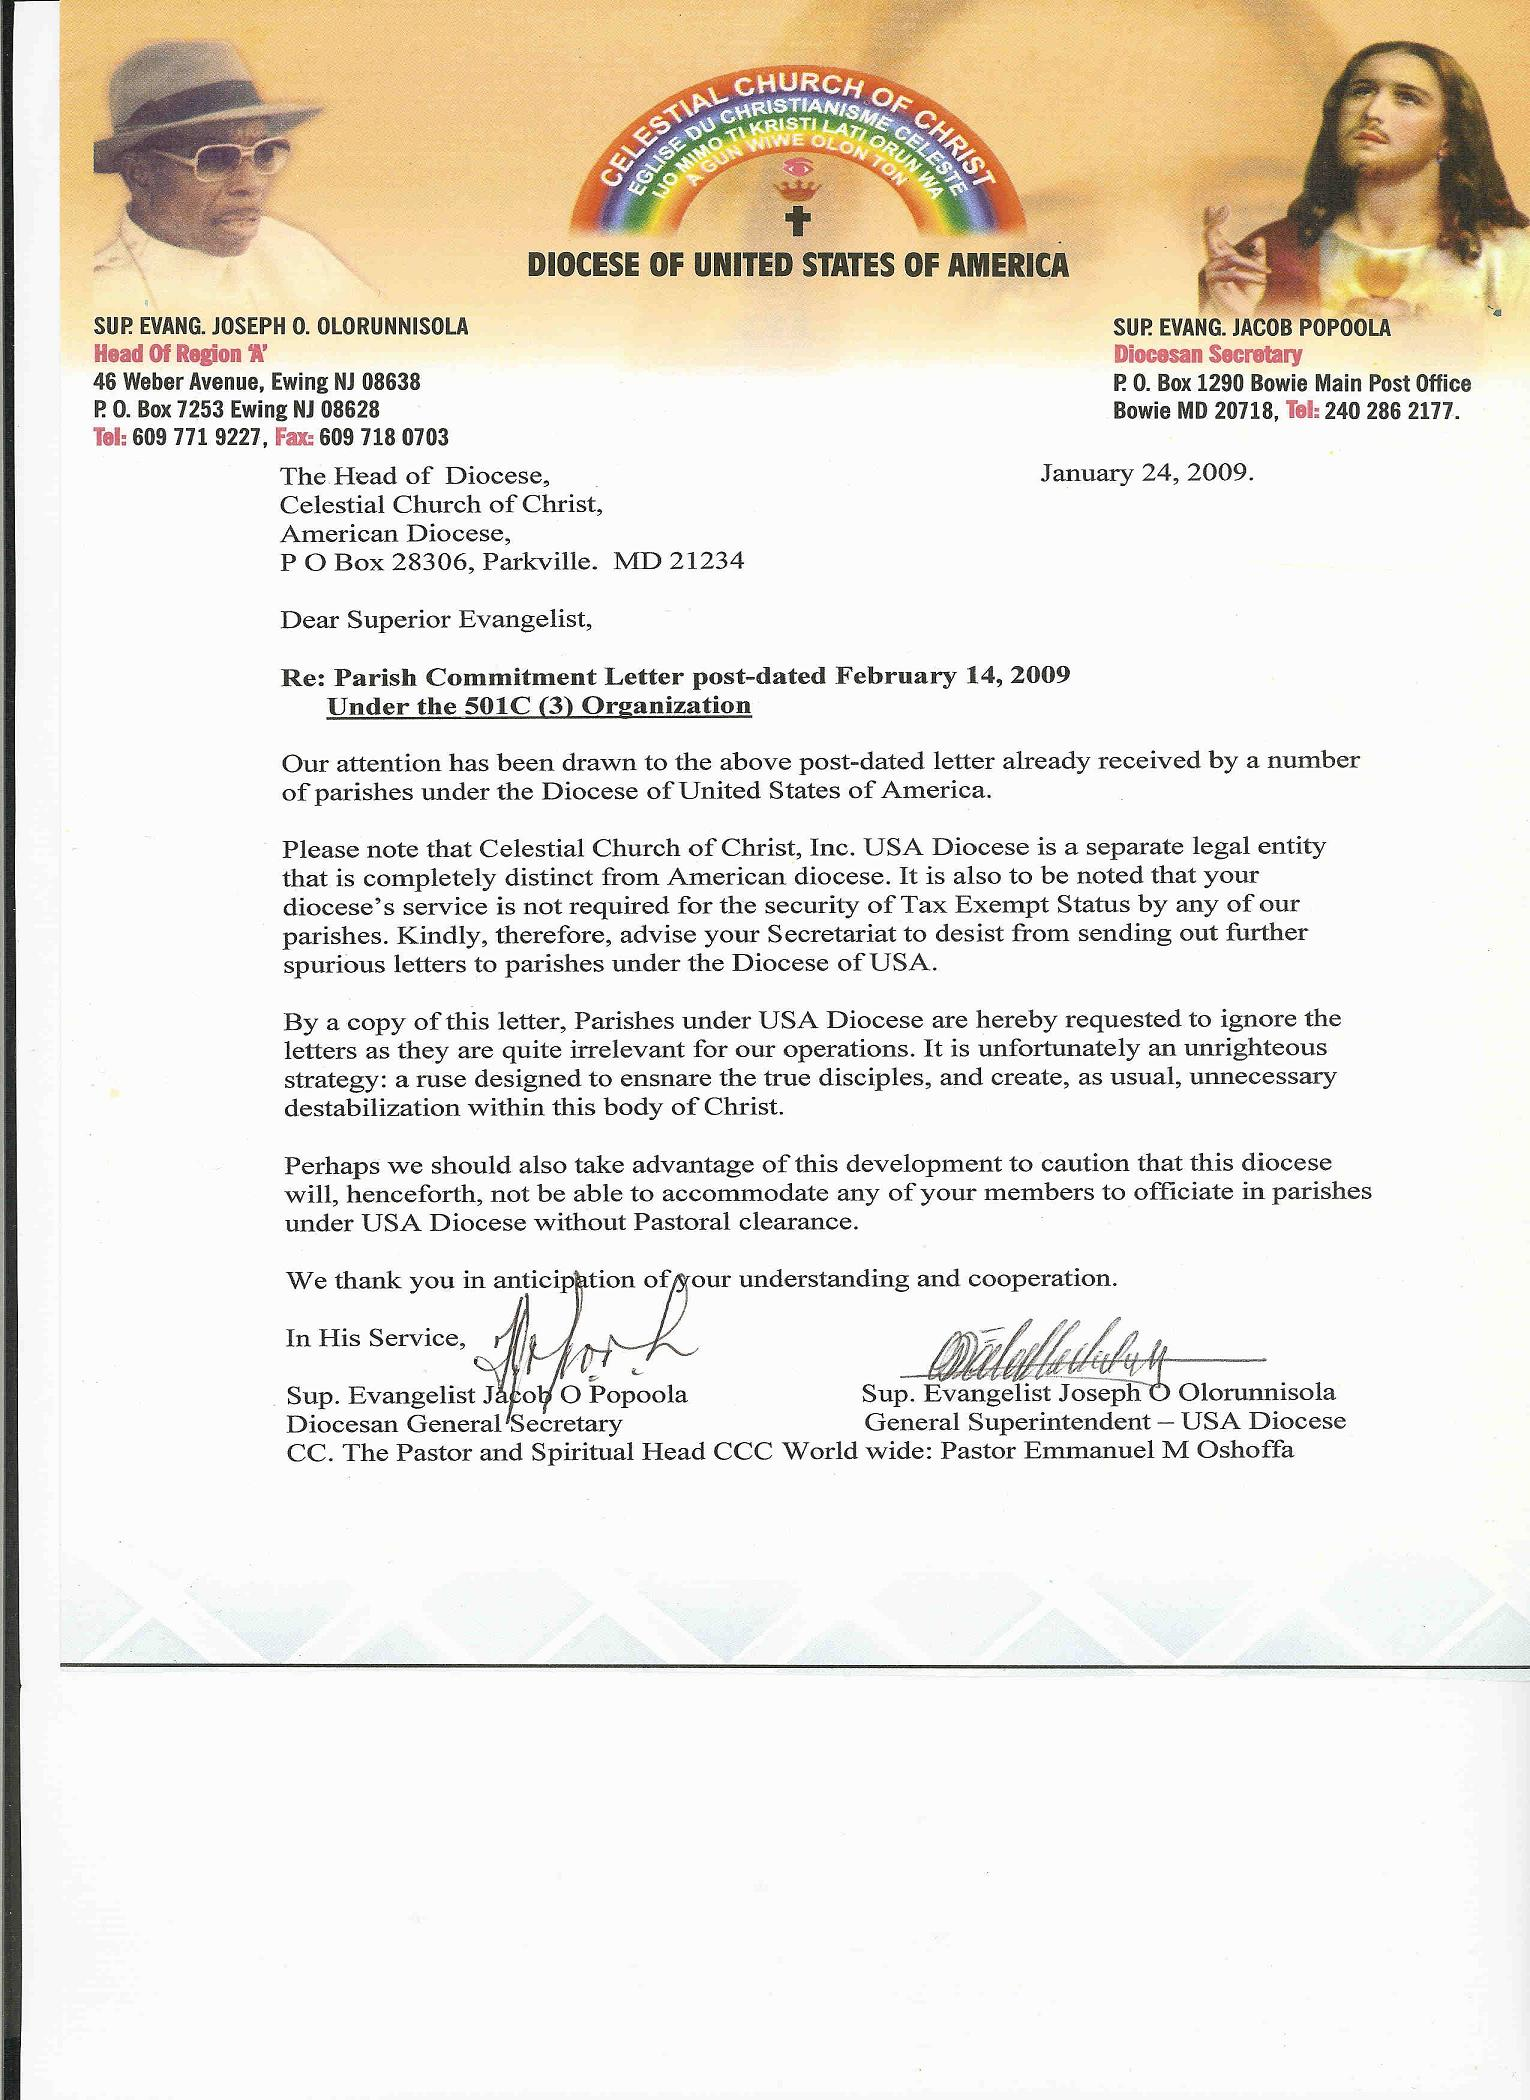 to our dismayed a replied letter written by the usa diocese diocese of united state of america